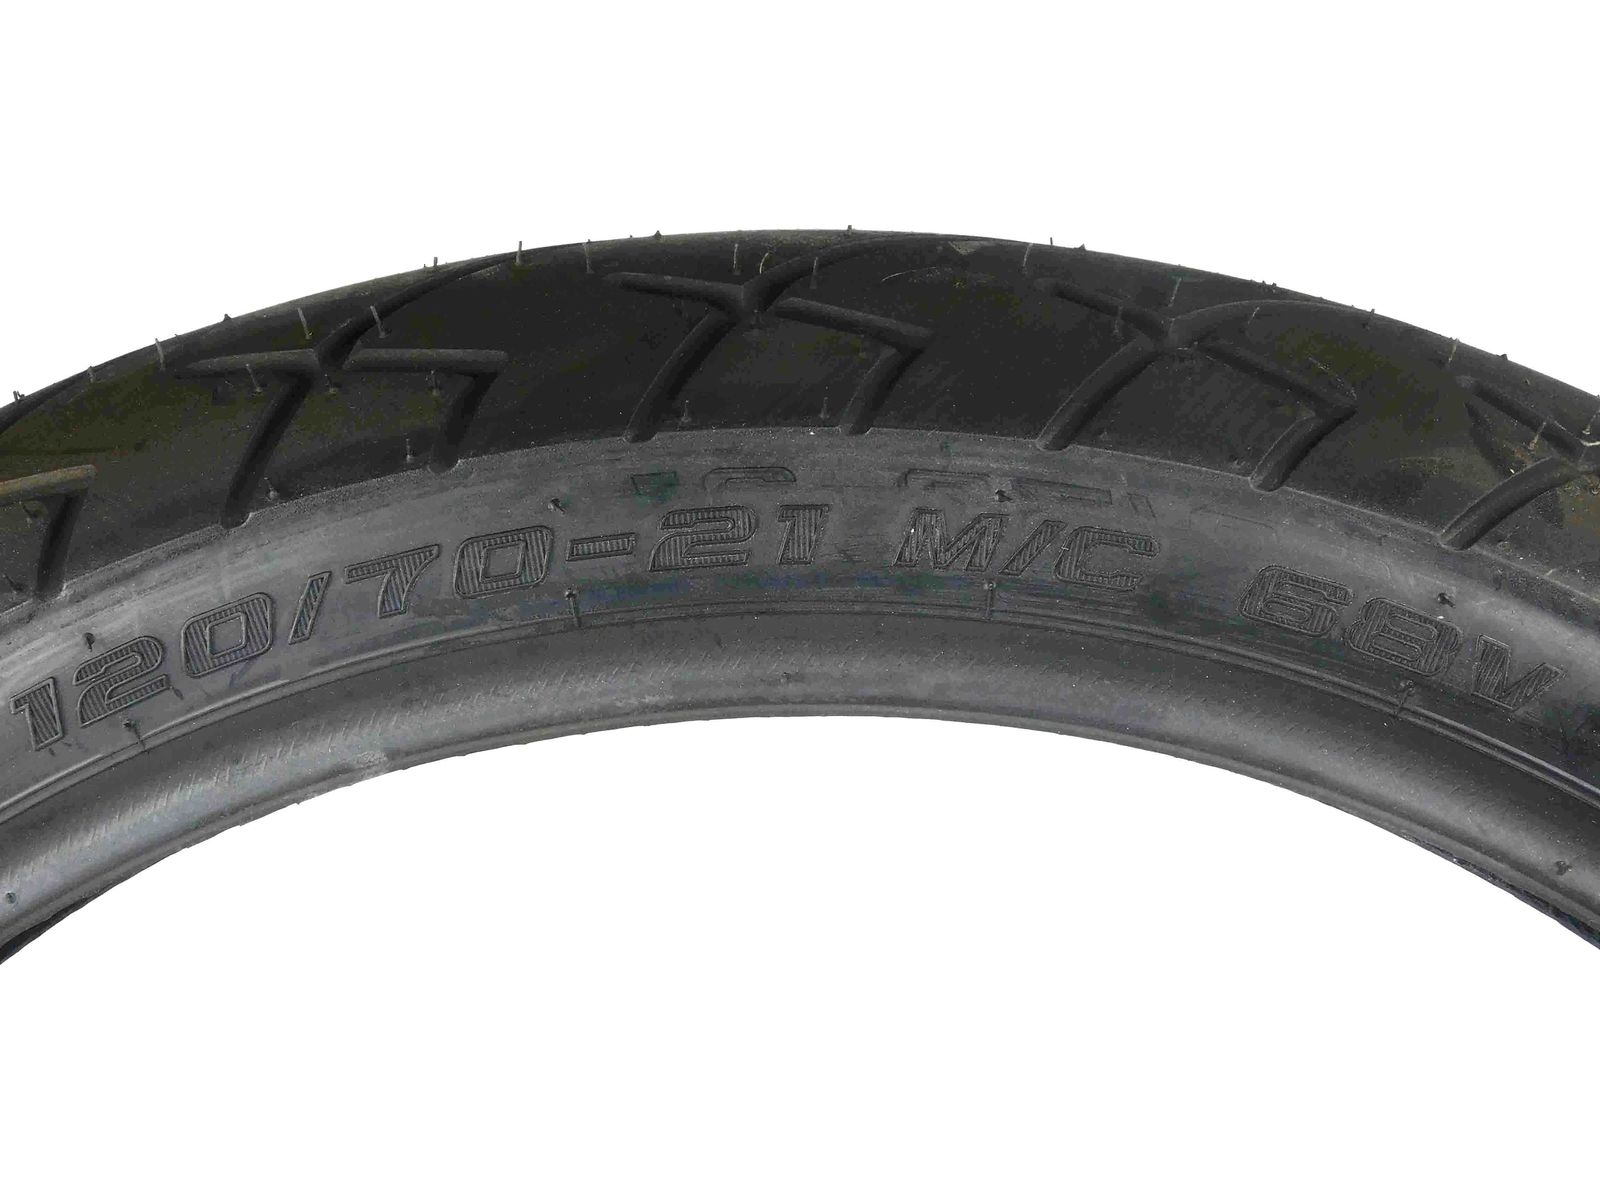 Full-Bore-120-70-21-Front-140-90-15-Rear-Set-Cruiser-Motorcycle-Tires-image-3